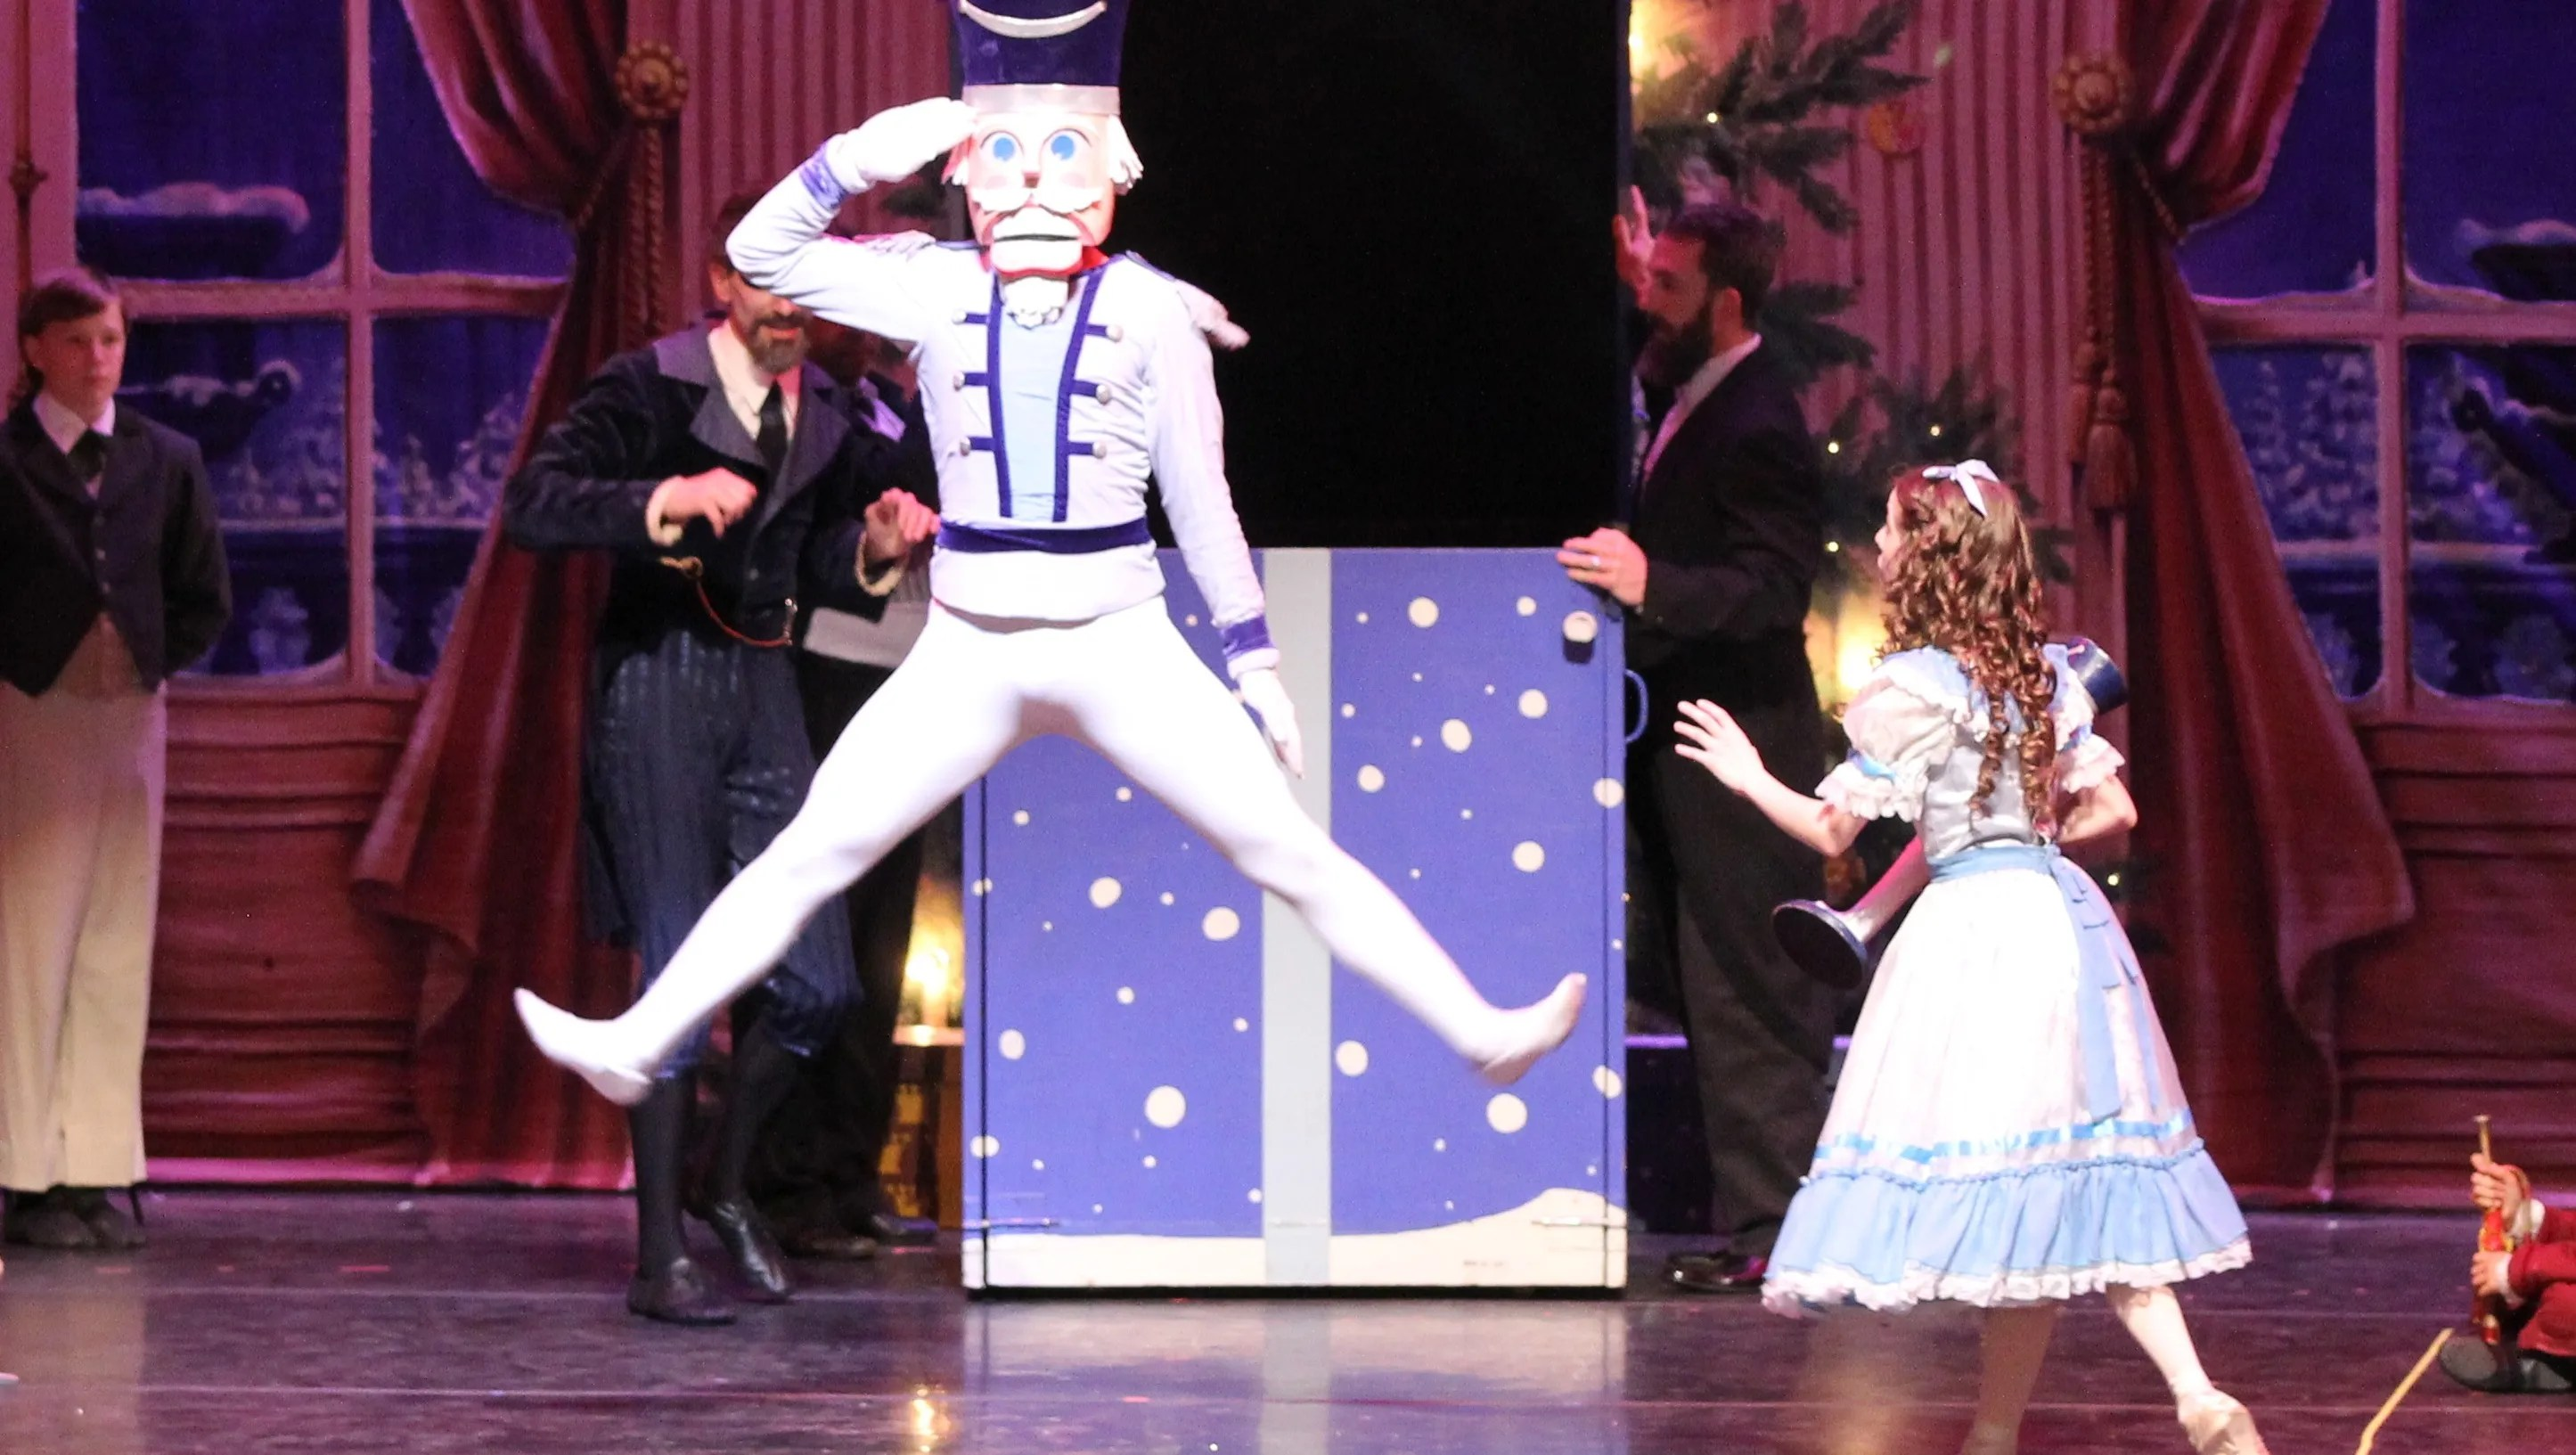 Nutcracker One Mother Ginger Of A Dreamy Ballet